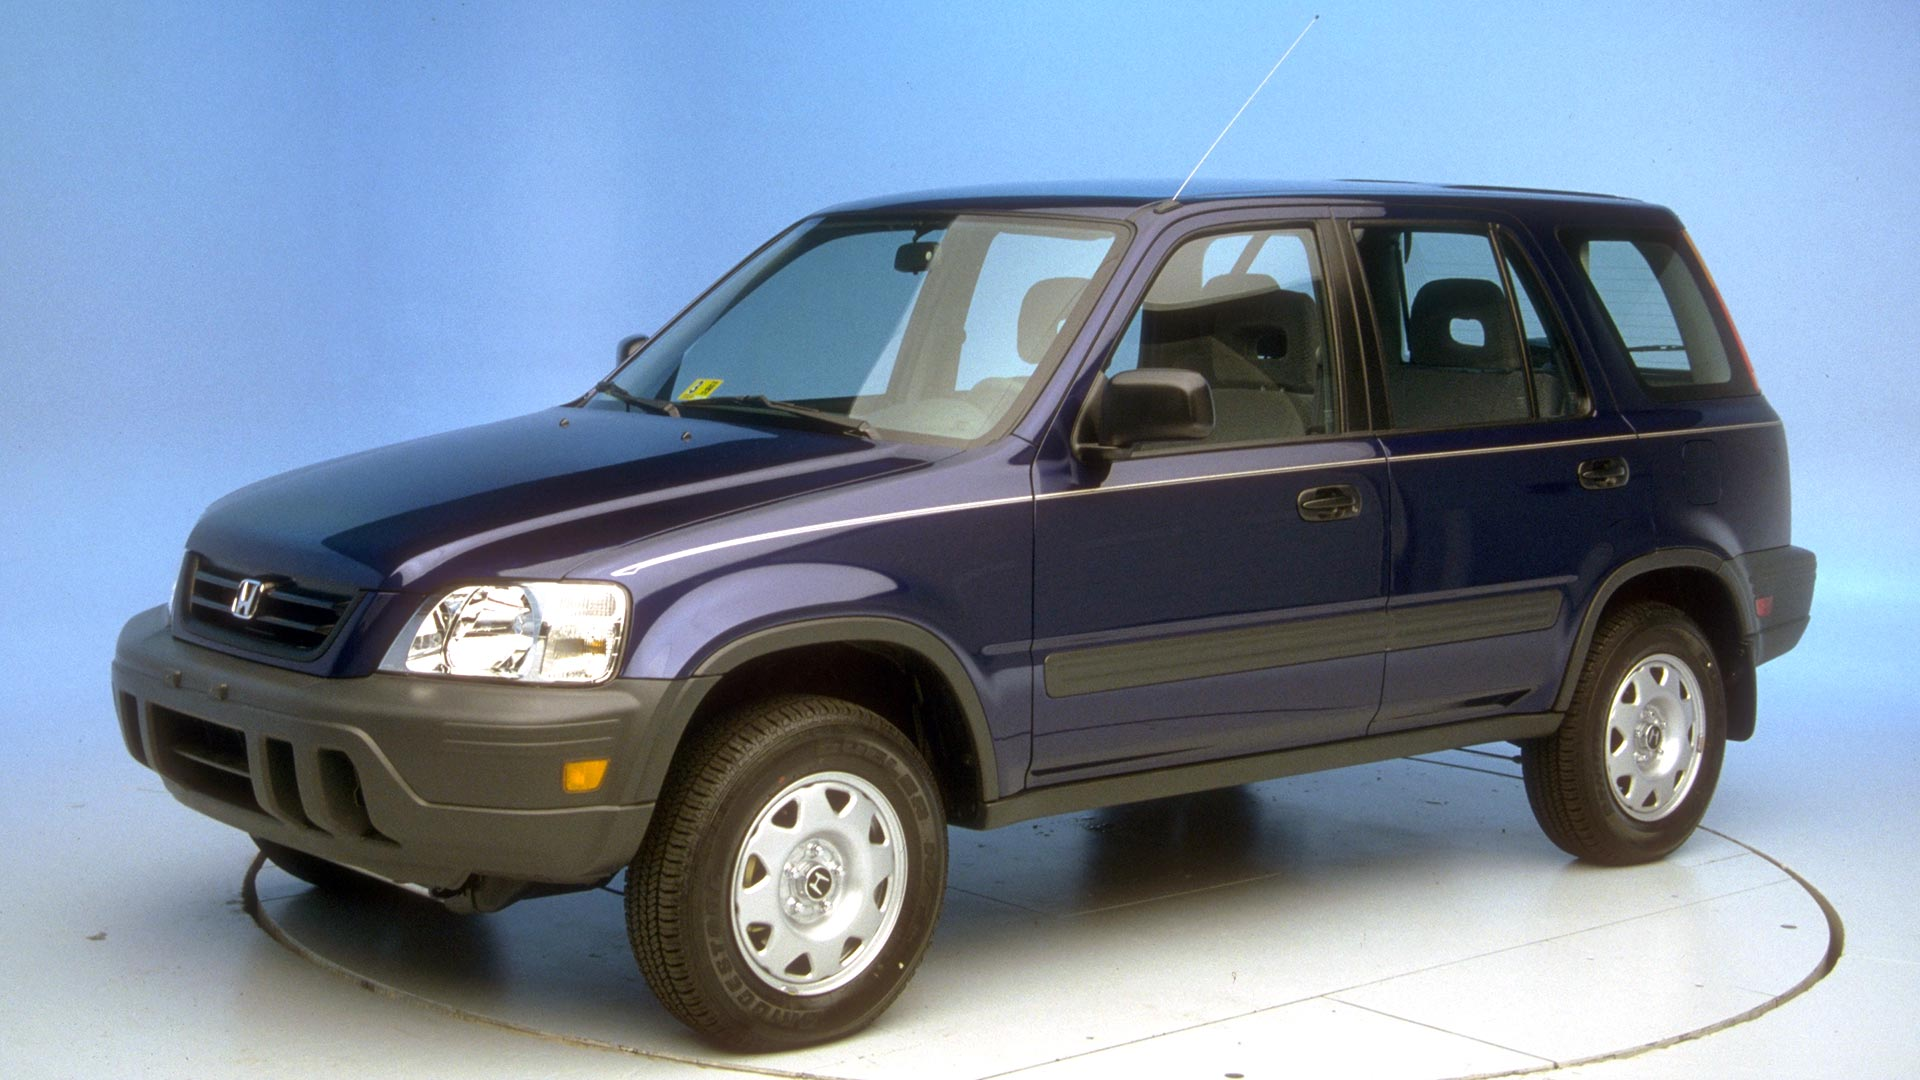 2001 Honda CR-V 4-door SUV